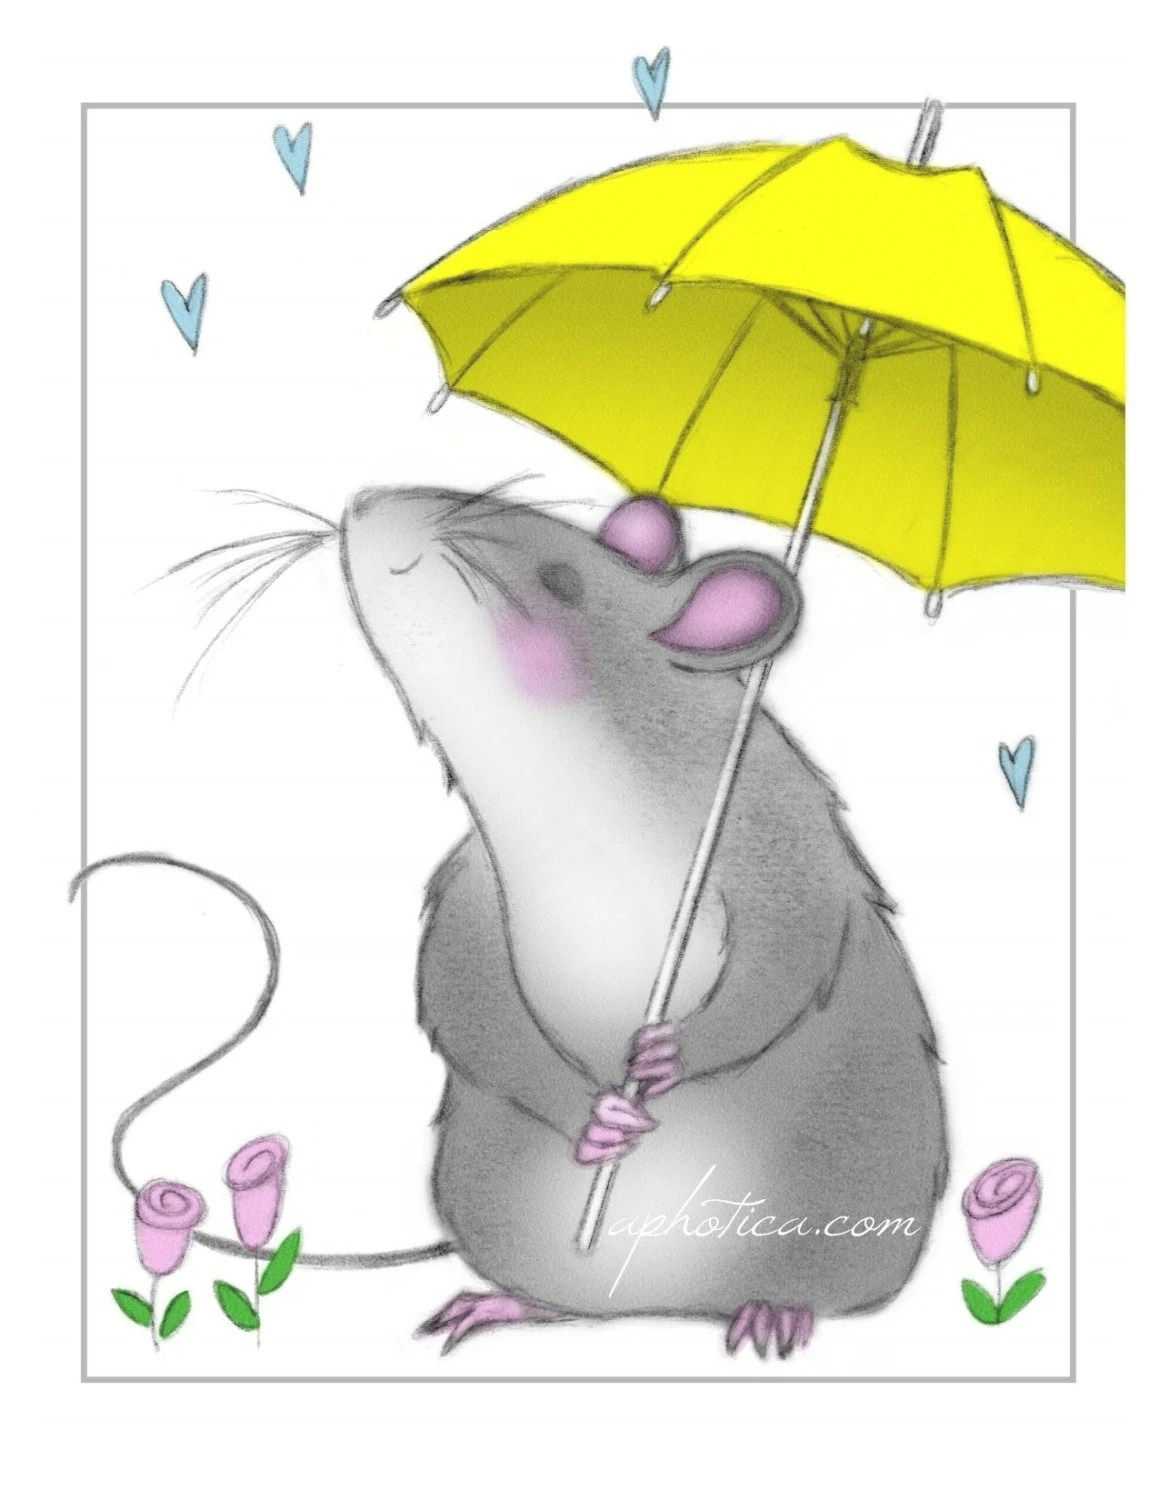 notecard- mouse with yellow umbrella from original artwork - aphotica